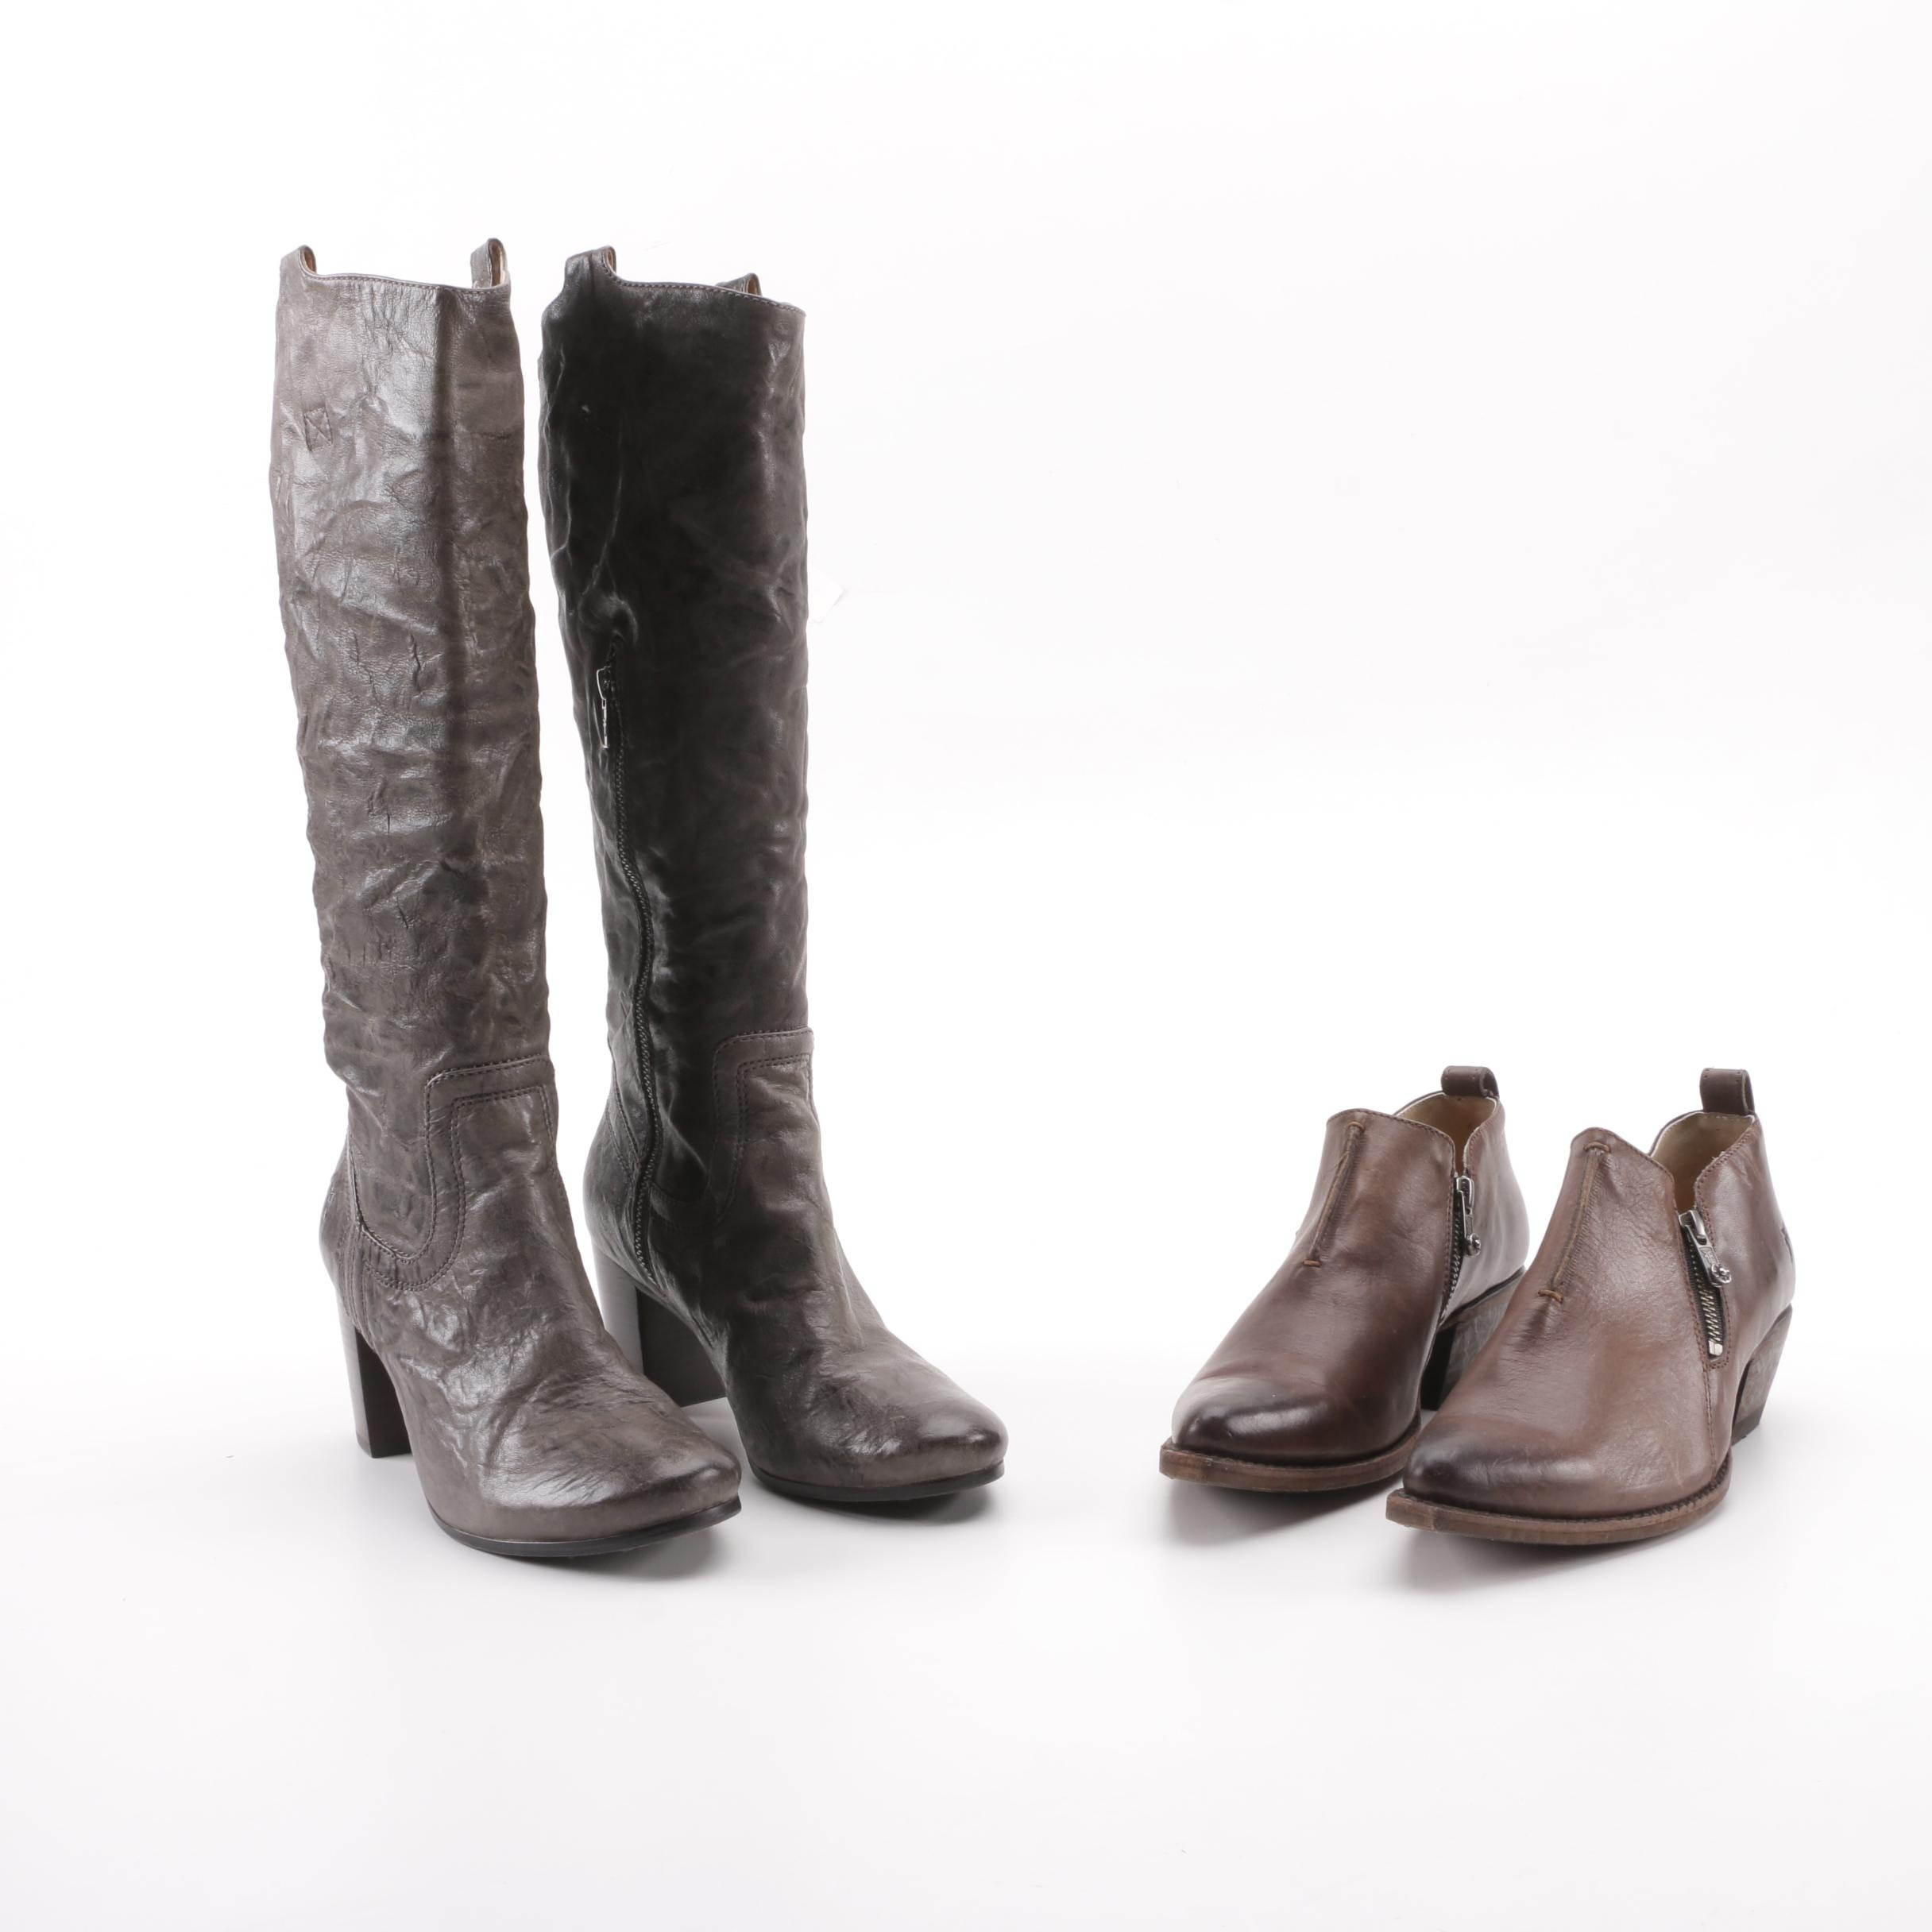 Frye Leather Booties and Carson Boots